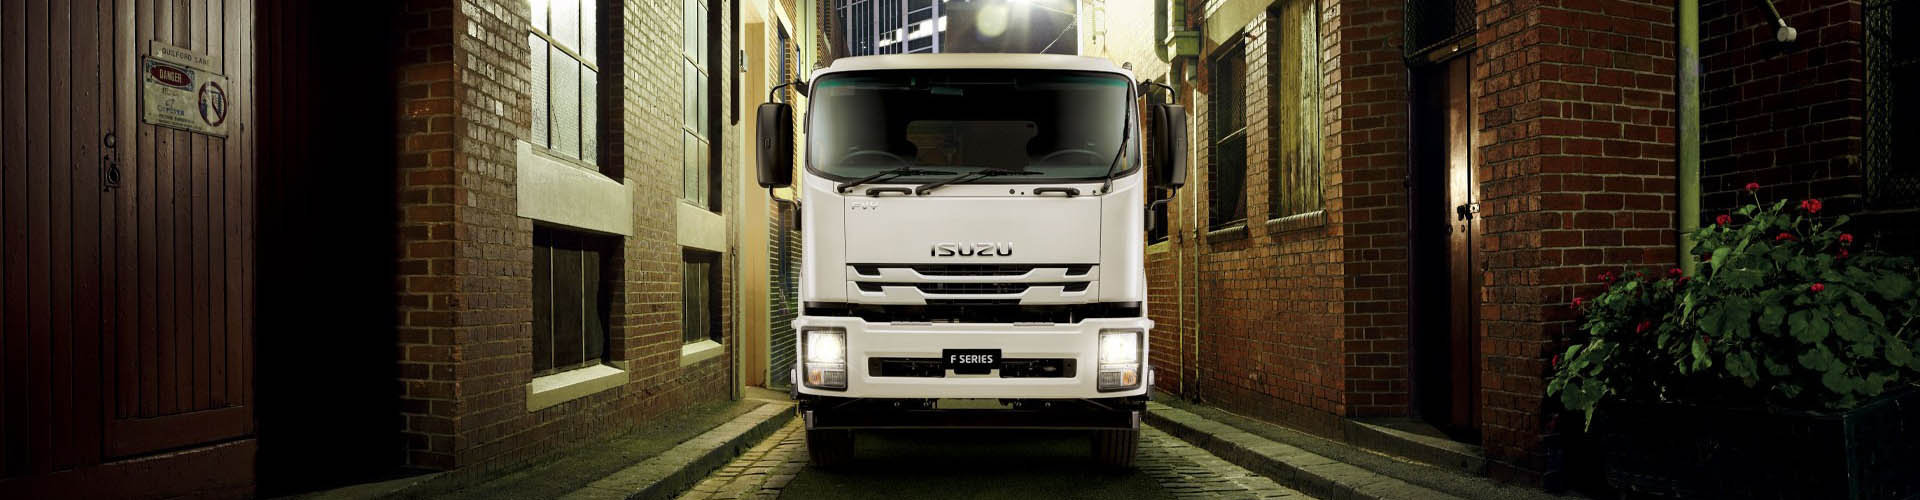 IsuzuTrucks-PB-F-01-Dec19